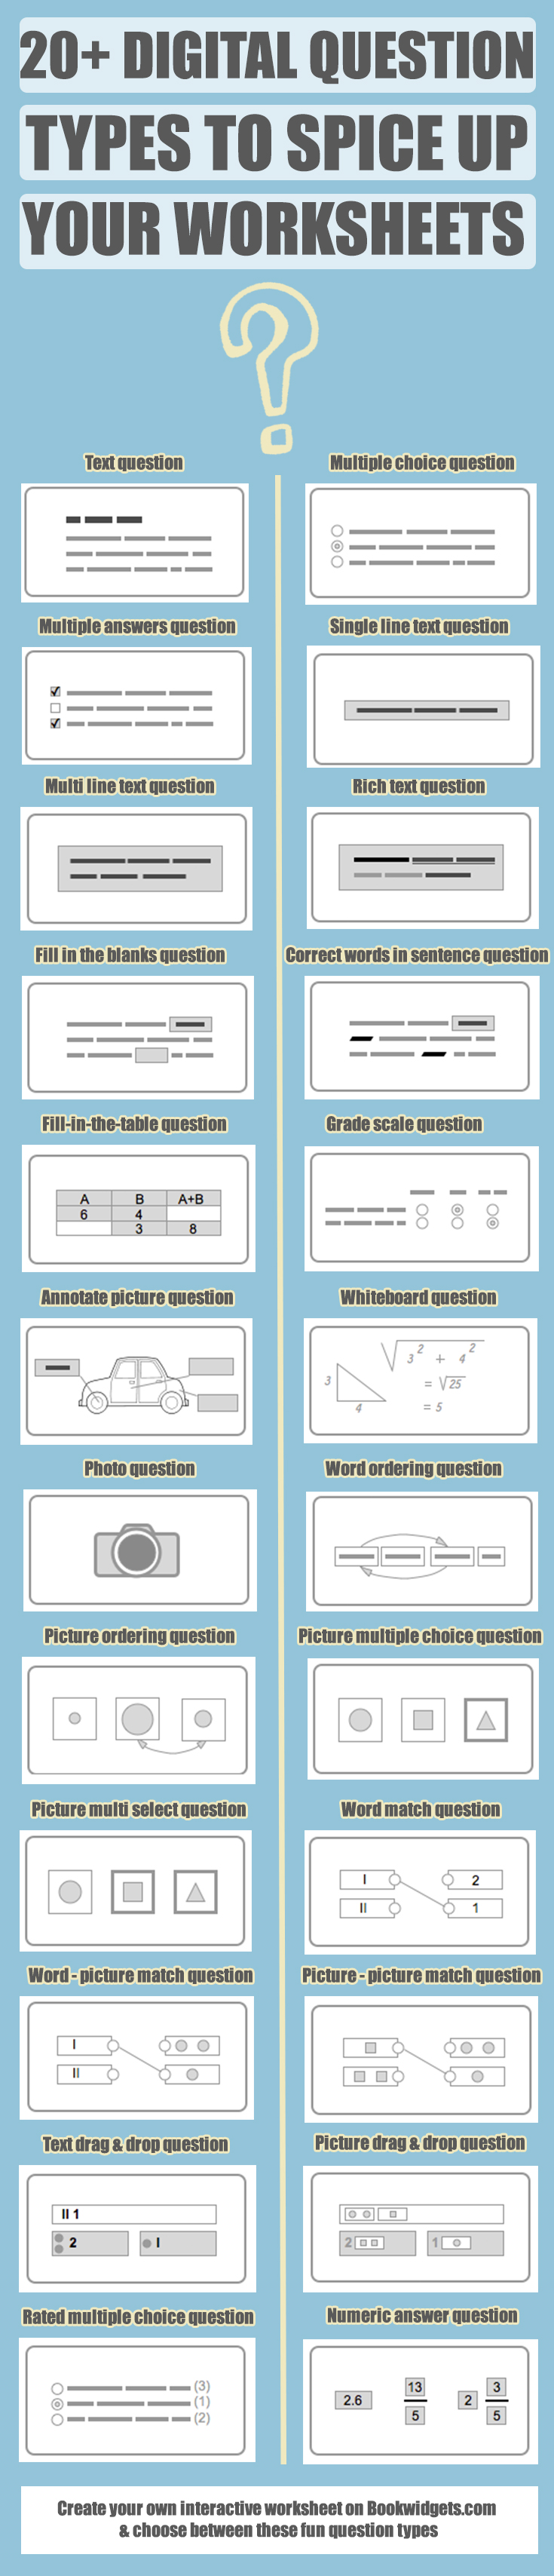 20+ digital question types to spice up your worksheets